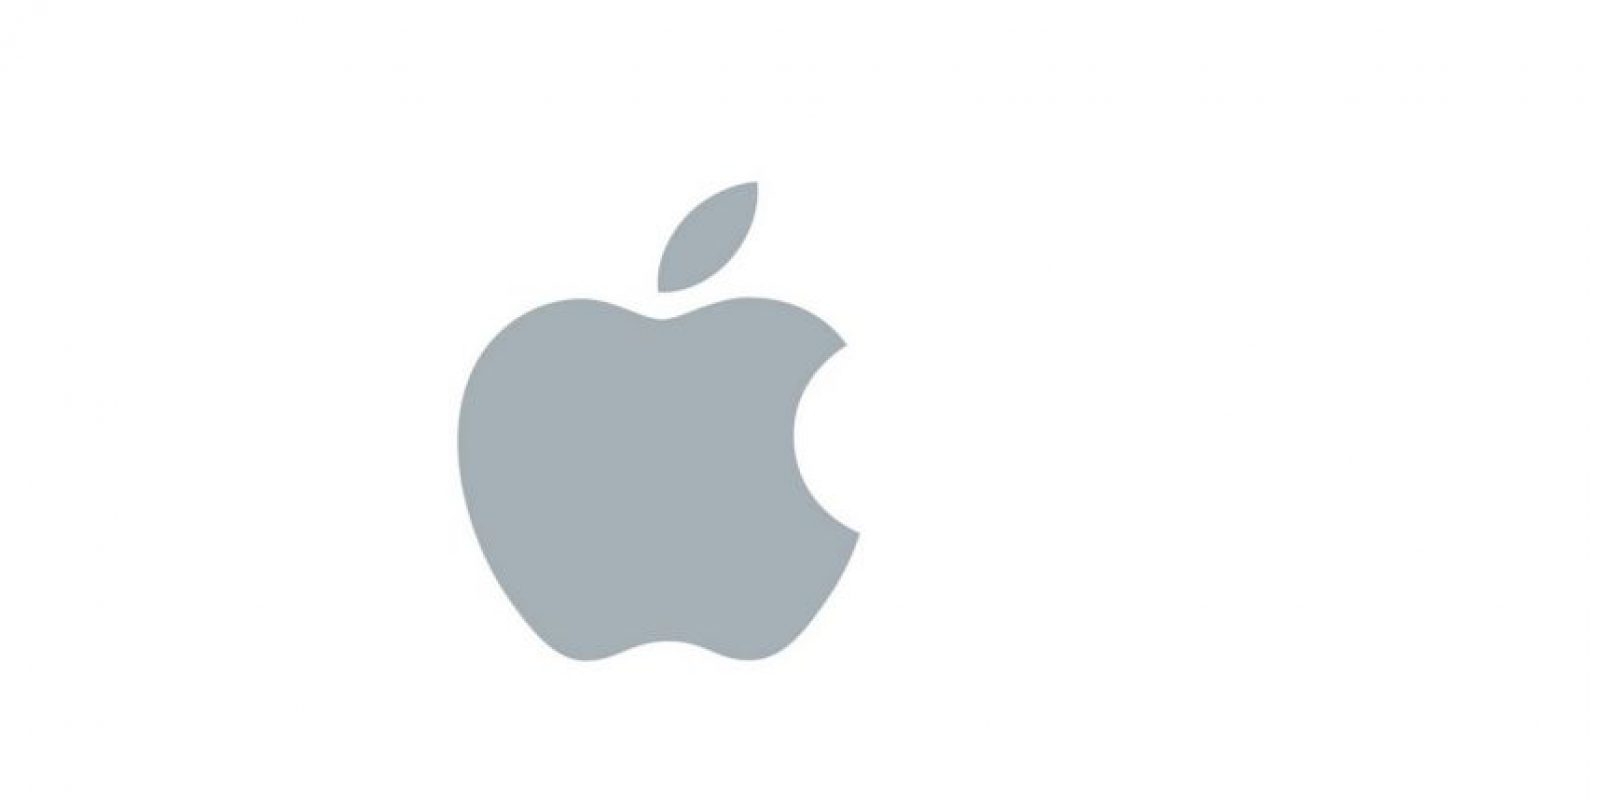 1. Apple: 170 mil 276 millones de dólares. Foto: Apple